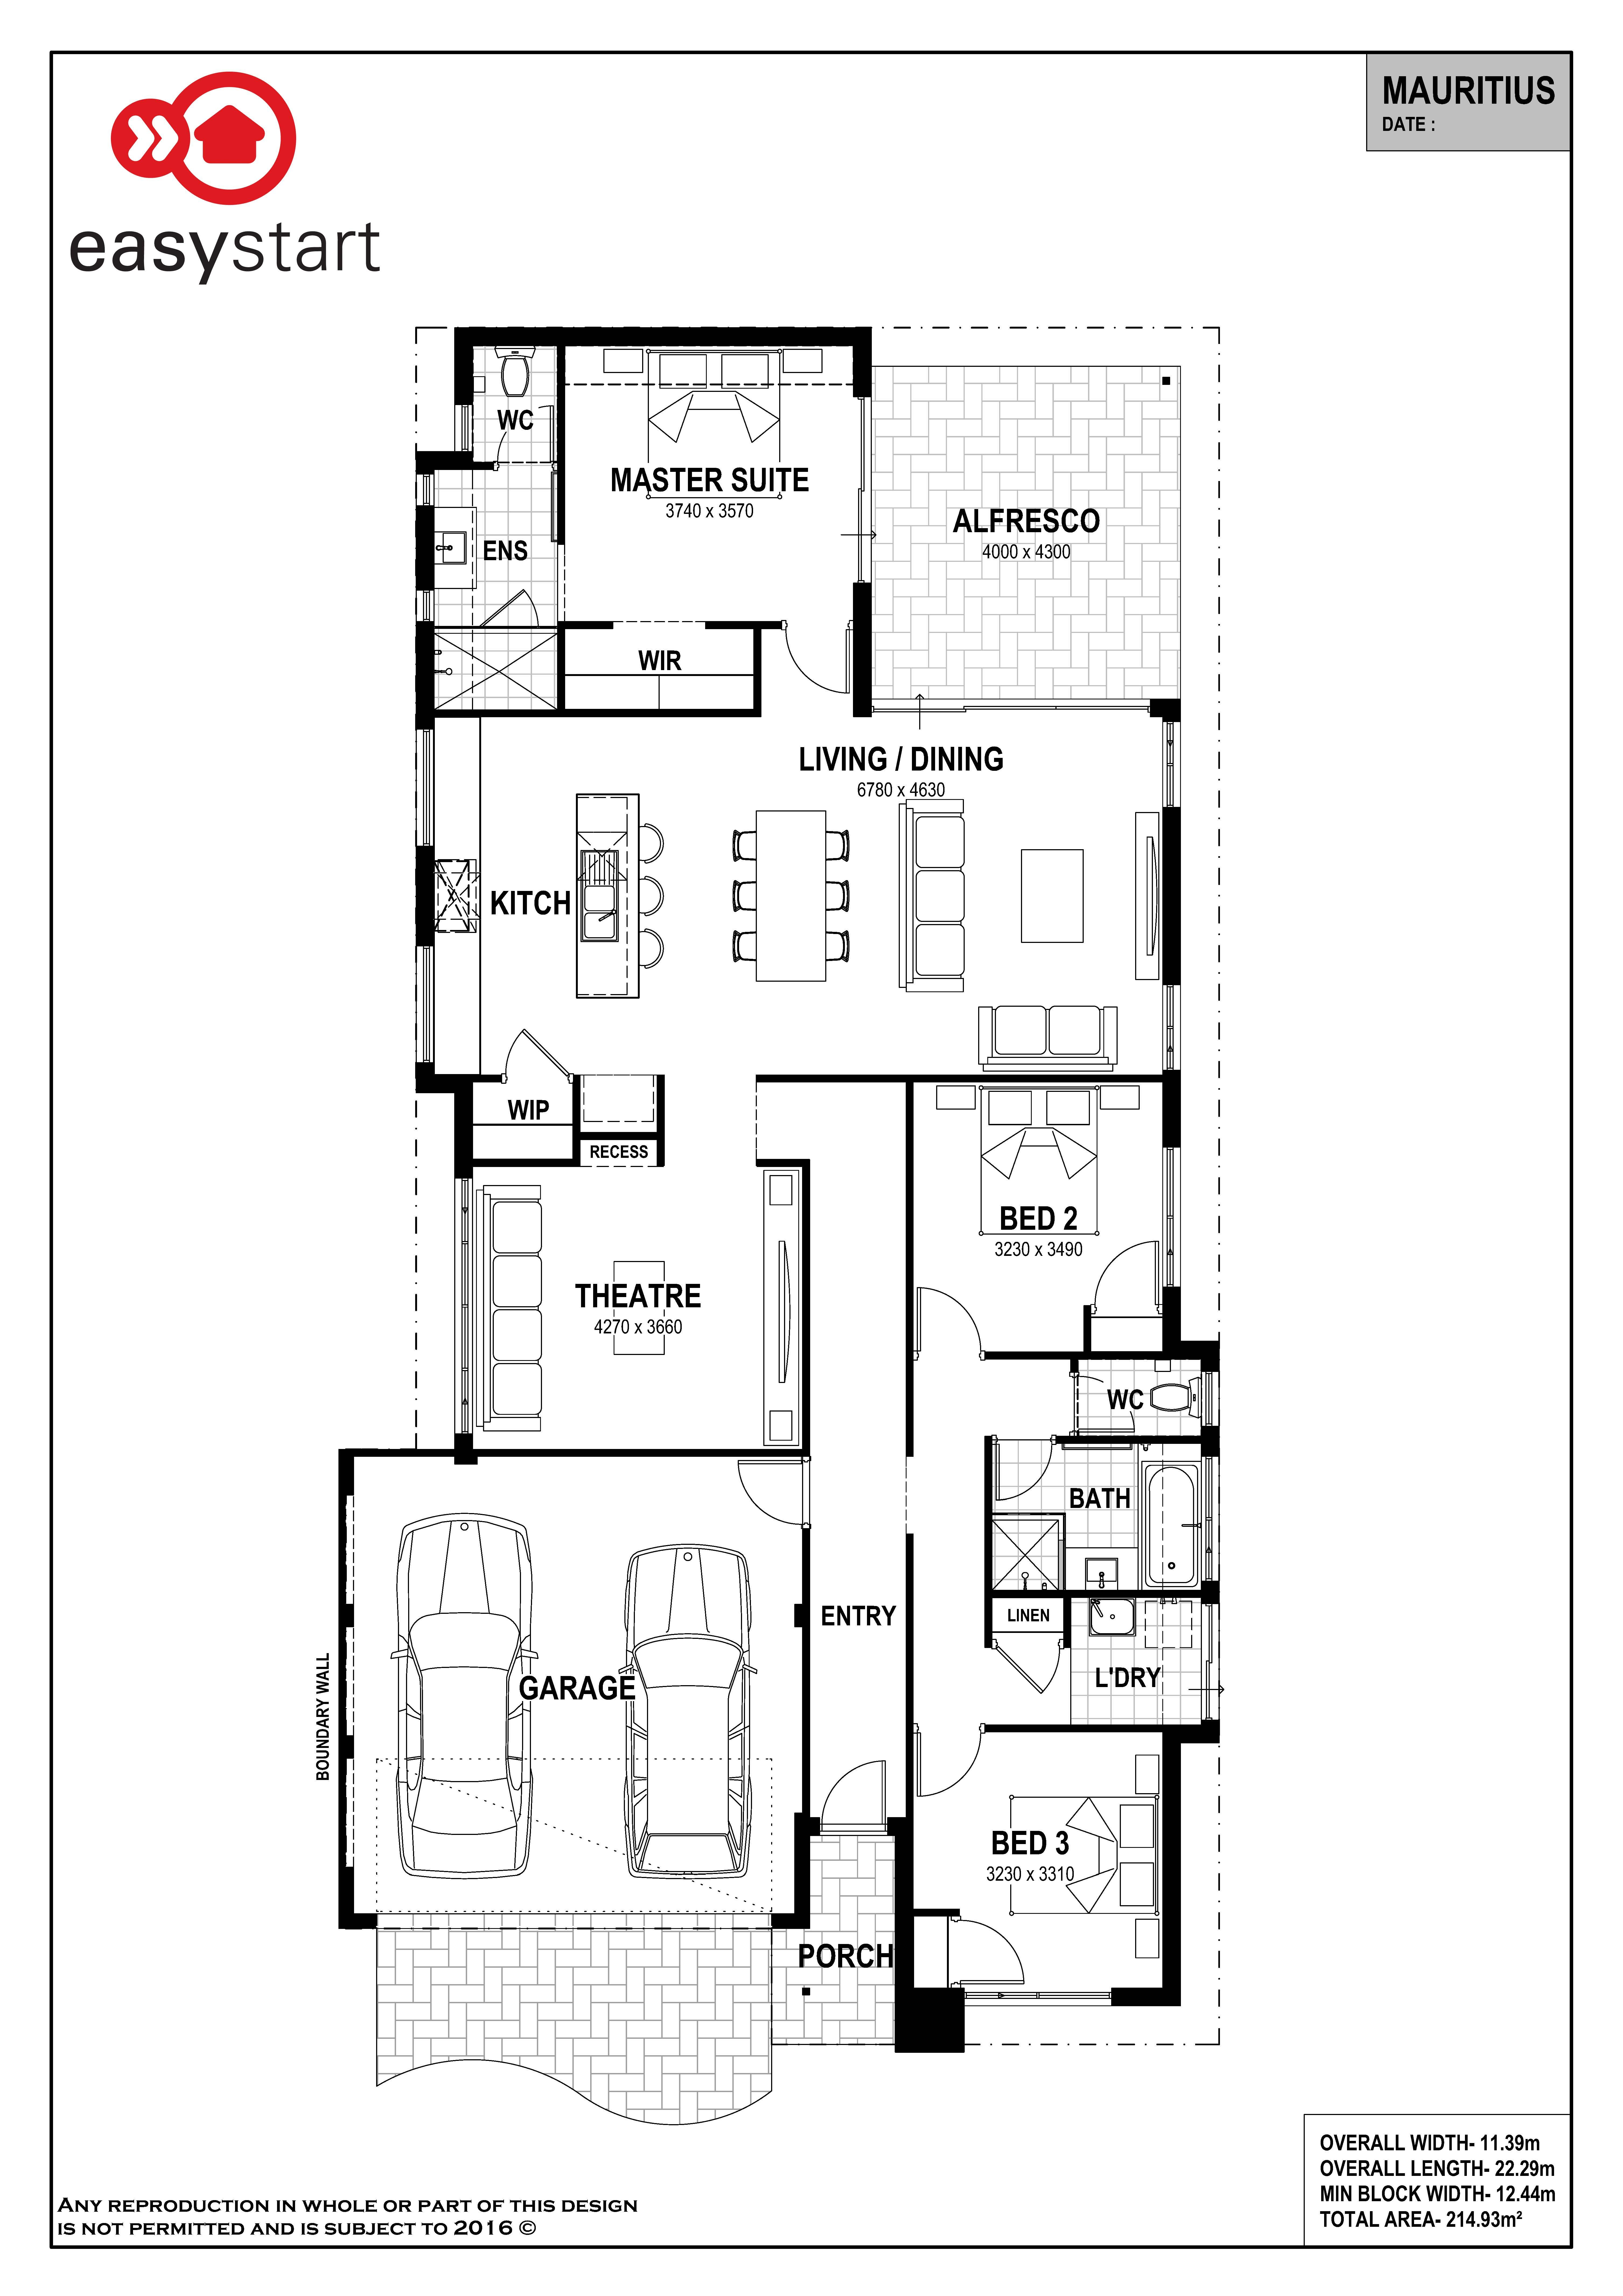 Mauritius | Easystart Home Designs Perth | 2017 House Plans ...